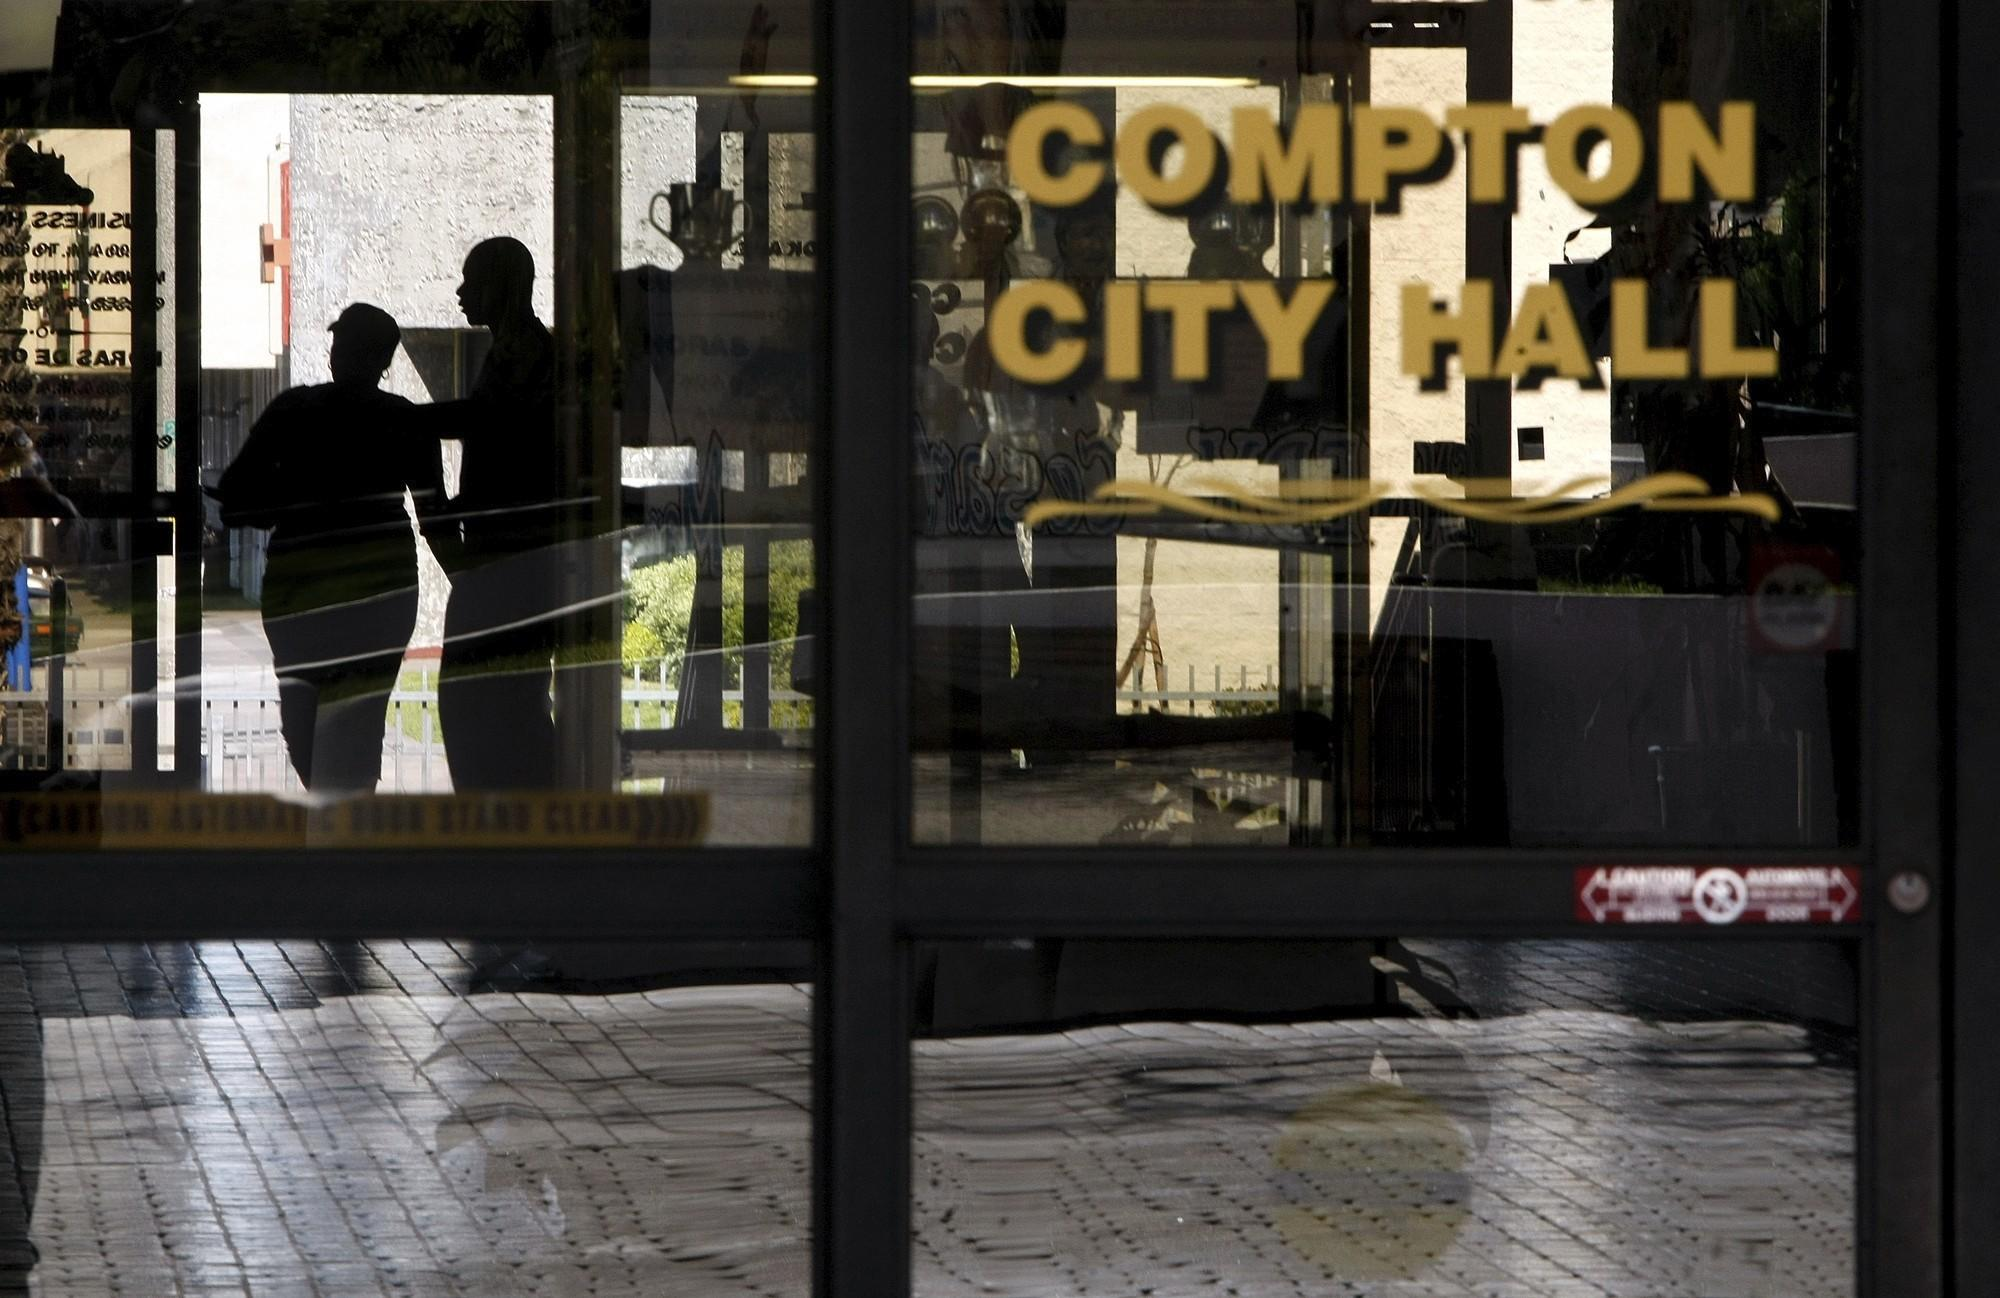 Visitors make their way into Compton City Hall in this 2012 photo.